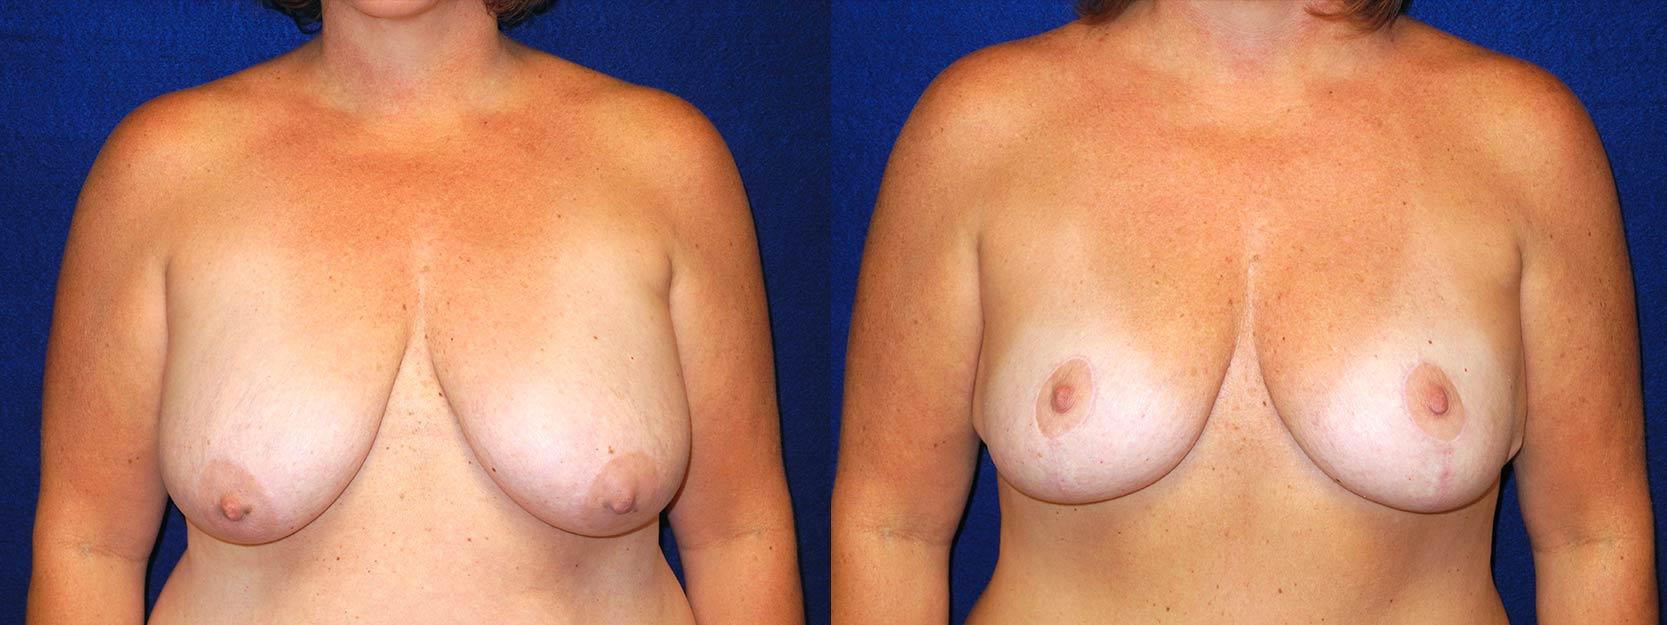 Frontal View - Breast Lift